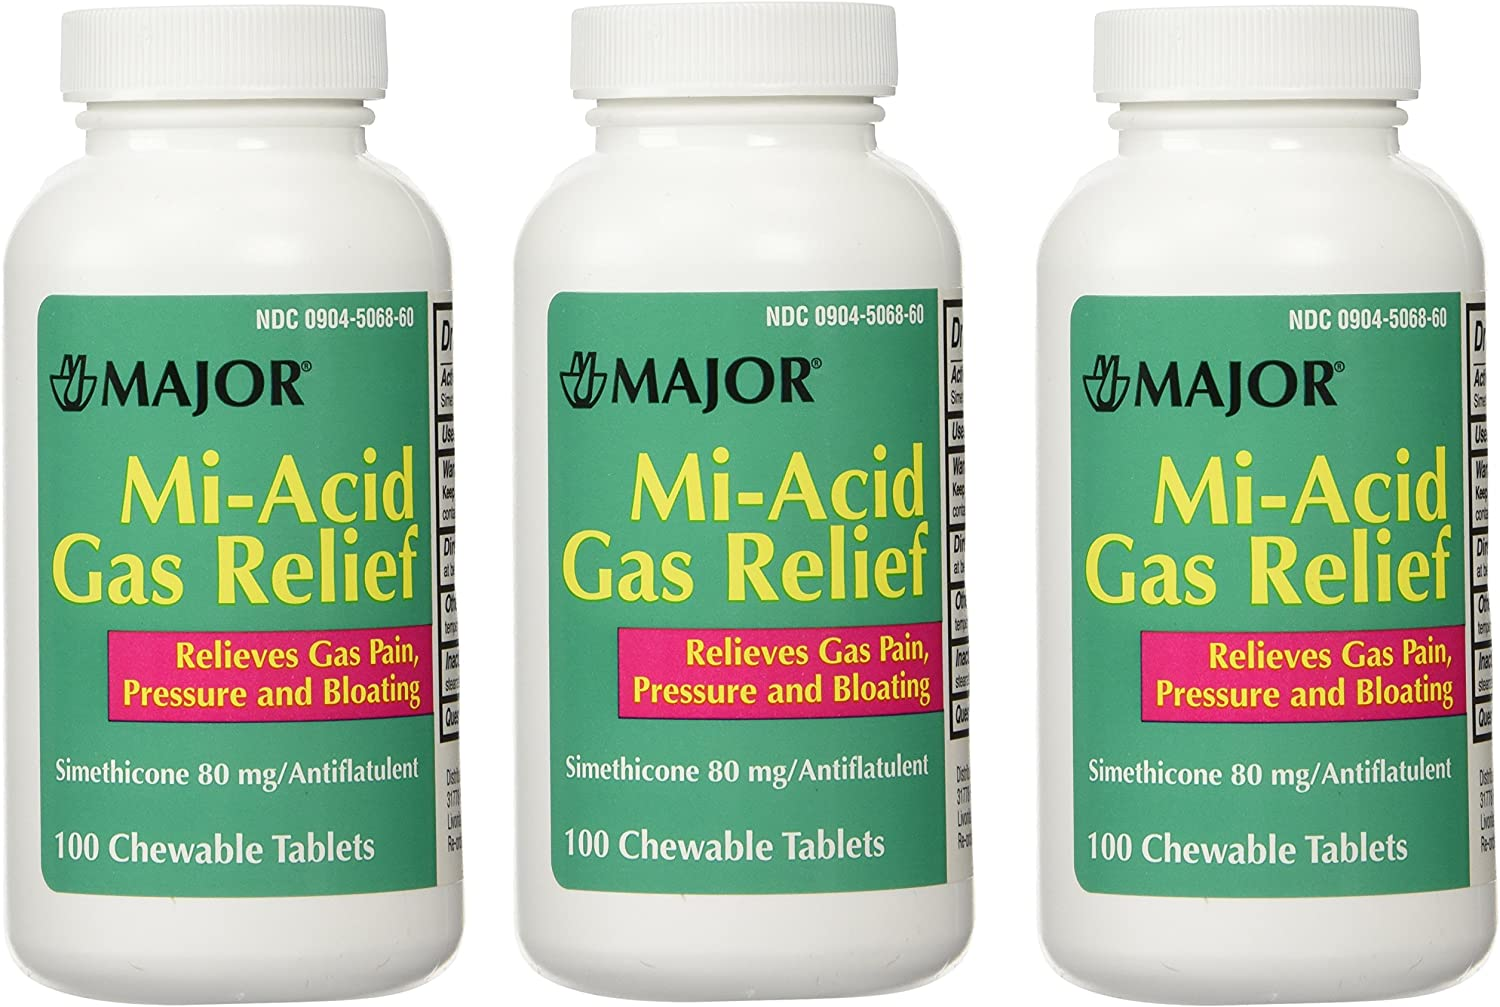 Simethicone 80mg Chewable Anti-Gas Generic for Mylanta Gas 3 Pack 3 X 100 ea. Total 300 Chewable Tablets : Health & Household